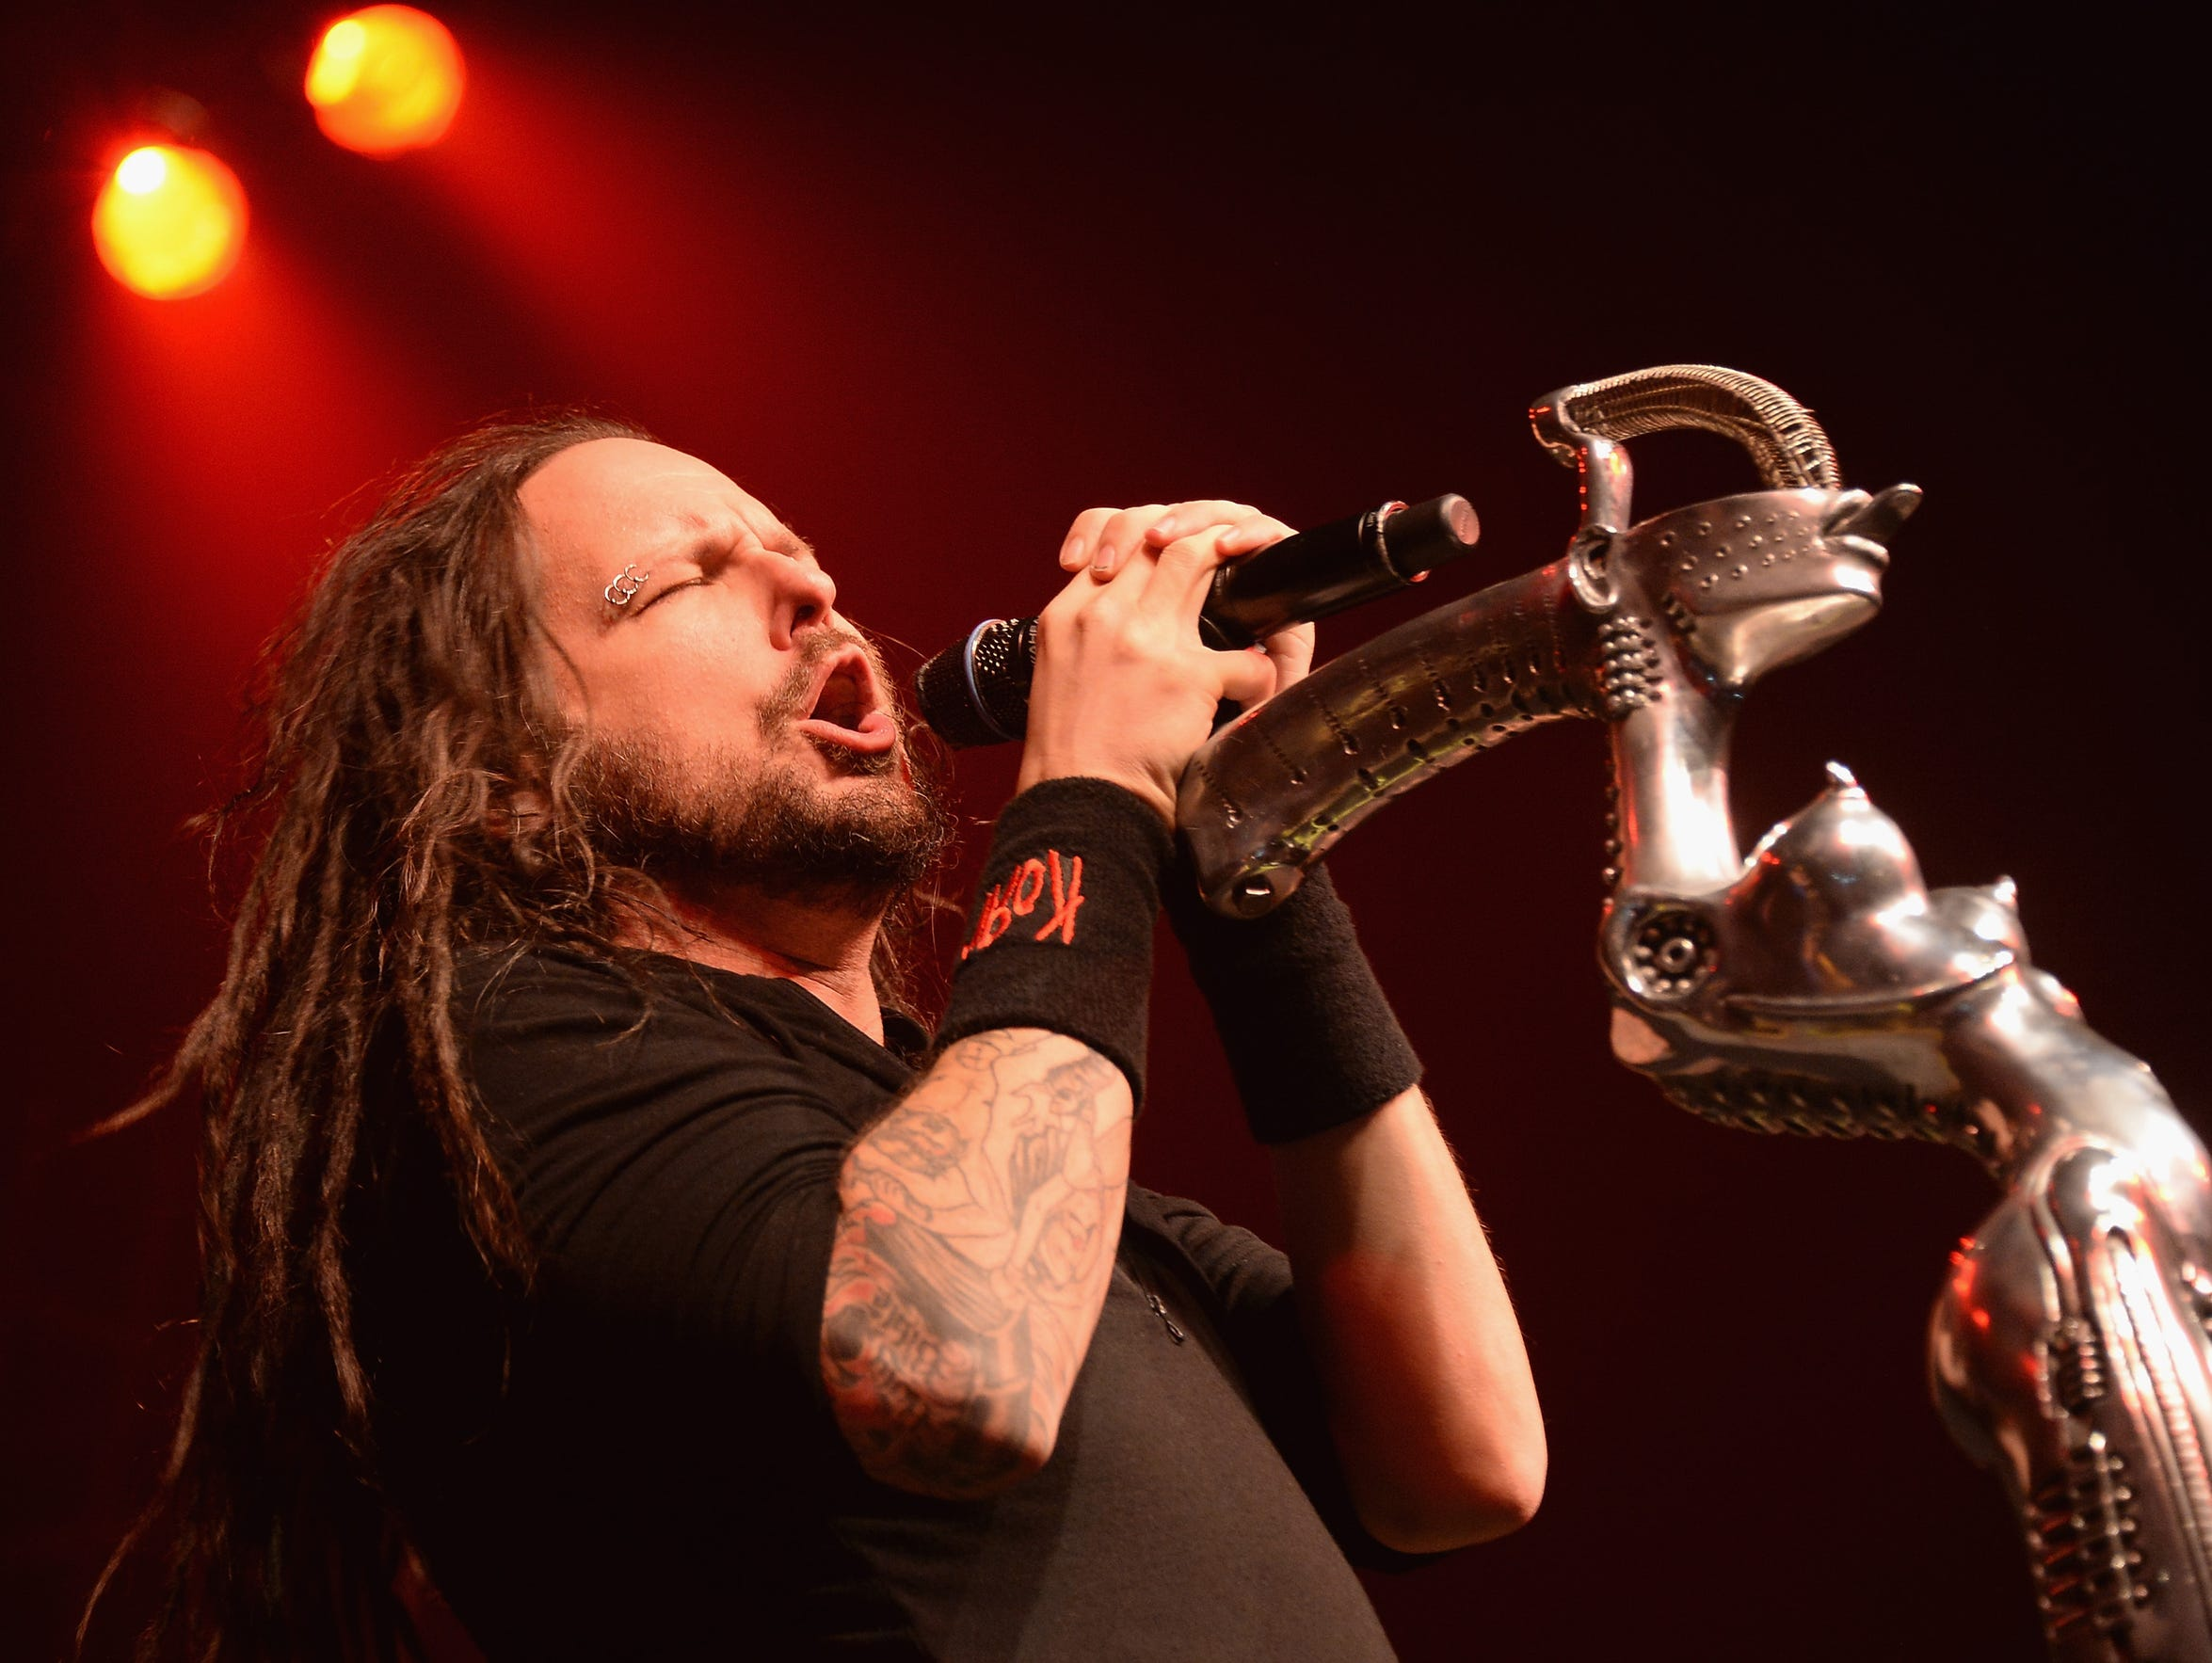 Korn with special guest Stone Sour will perform at